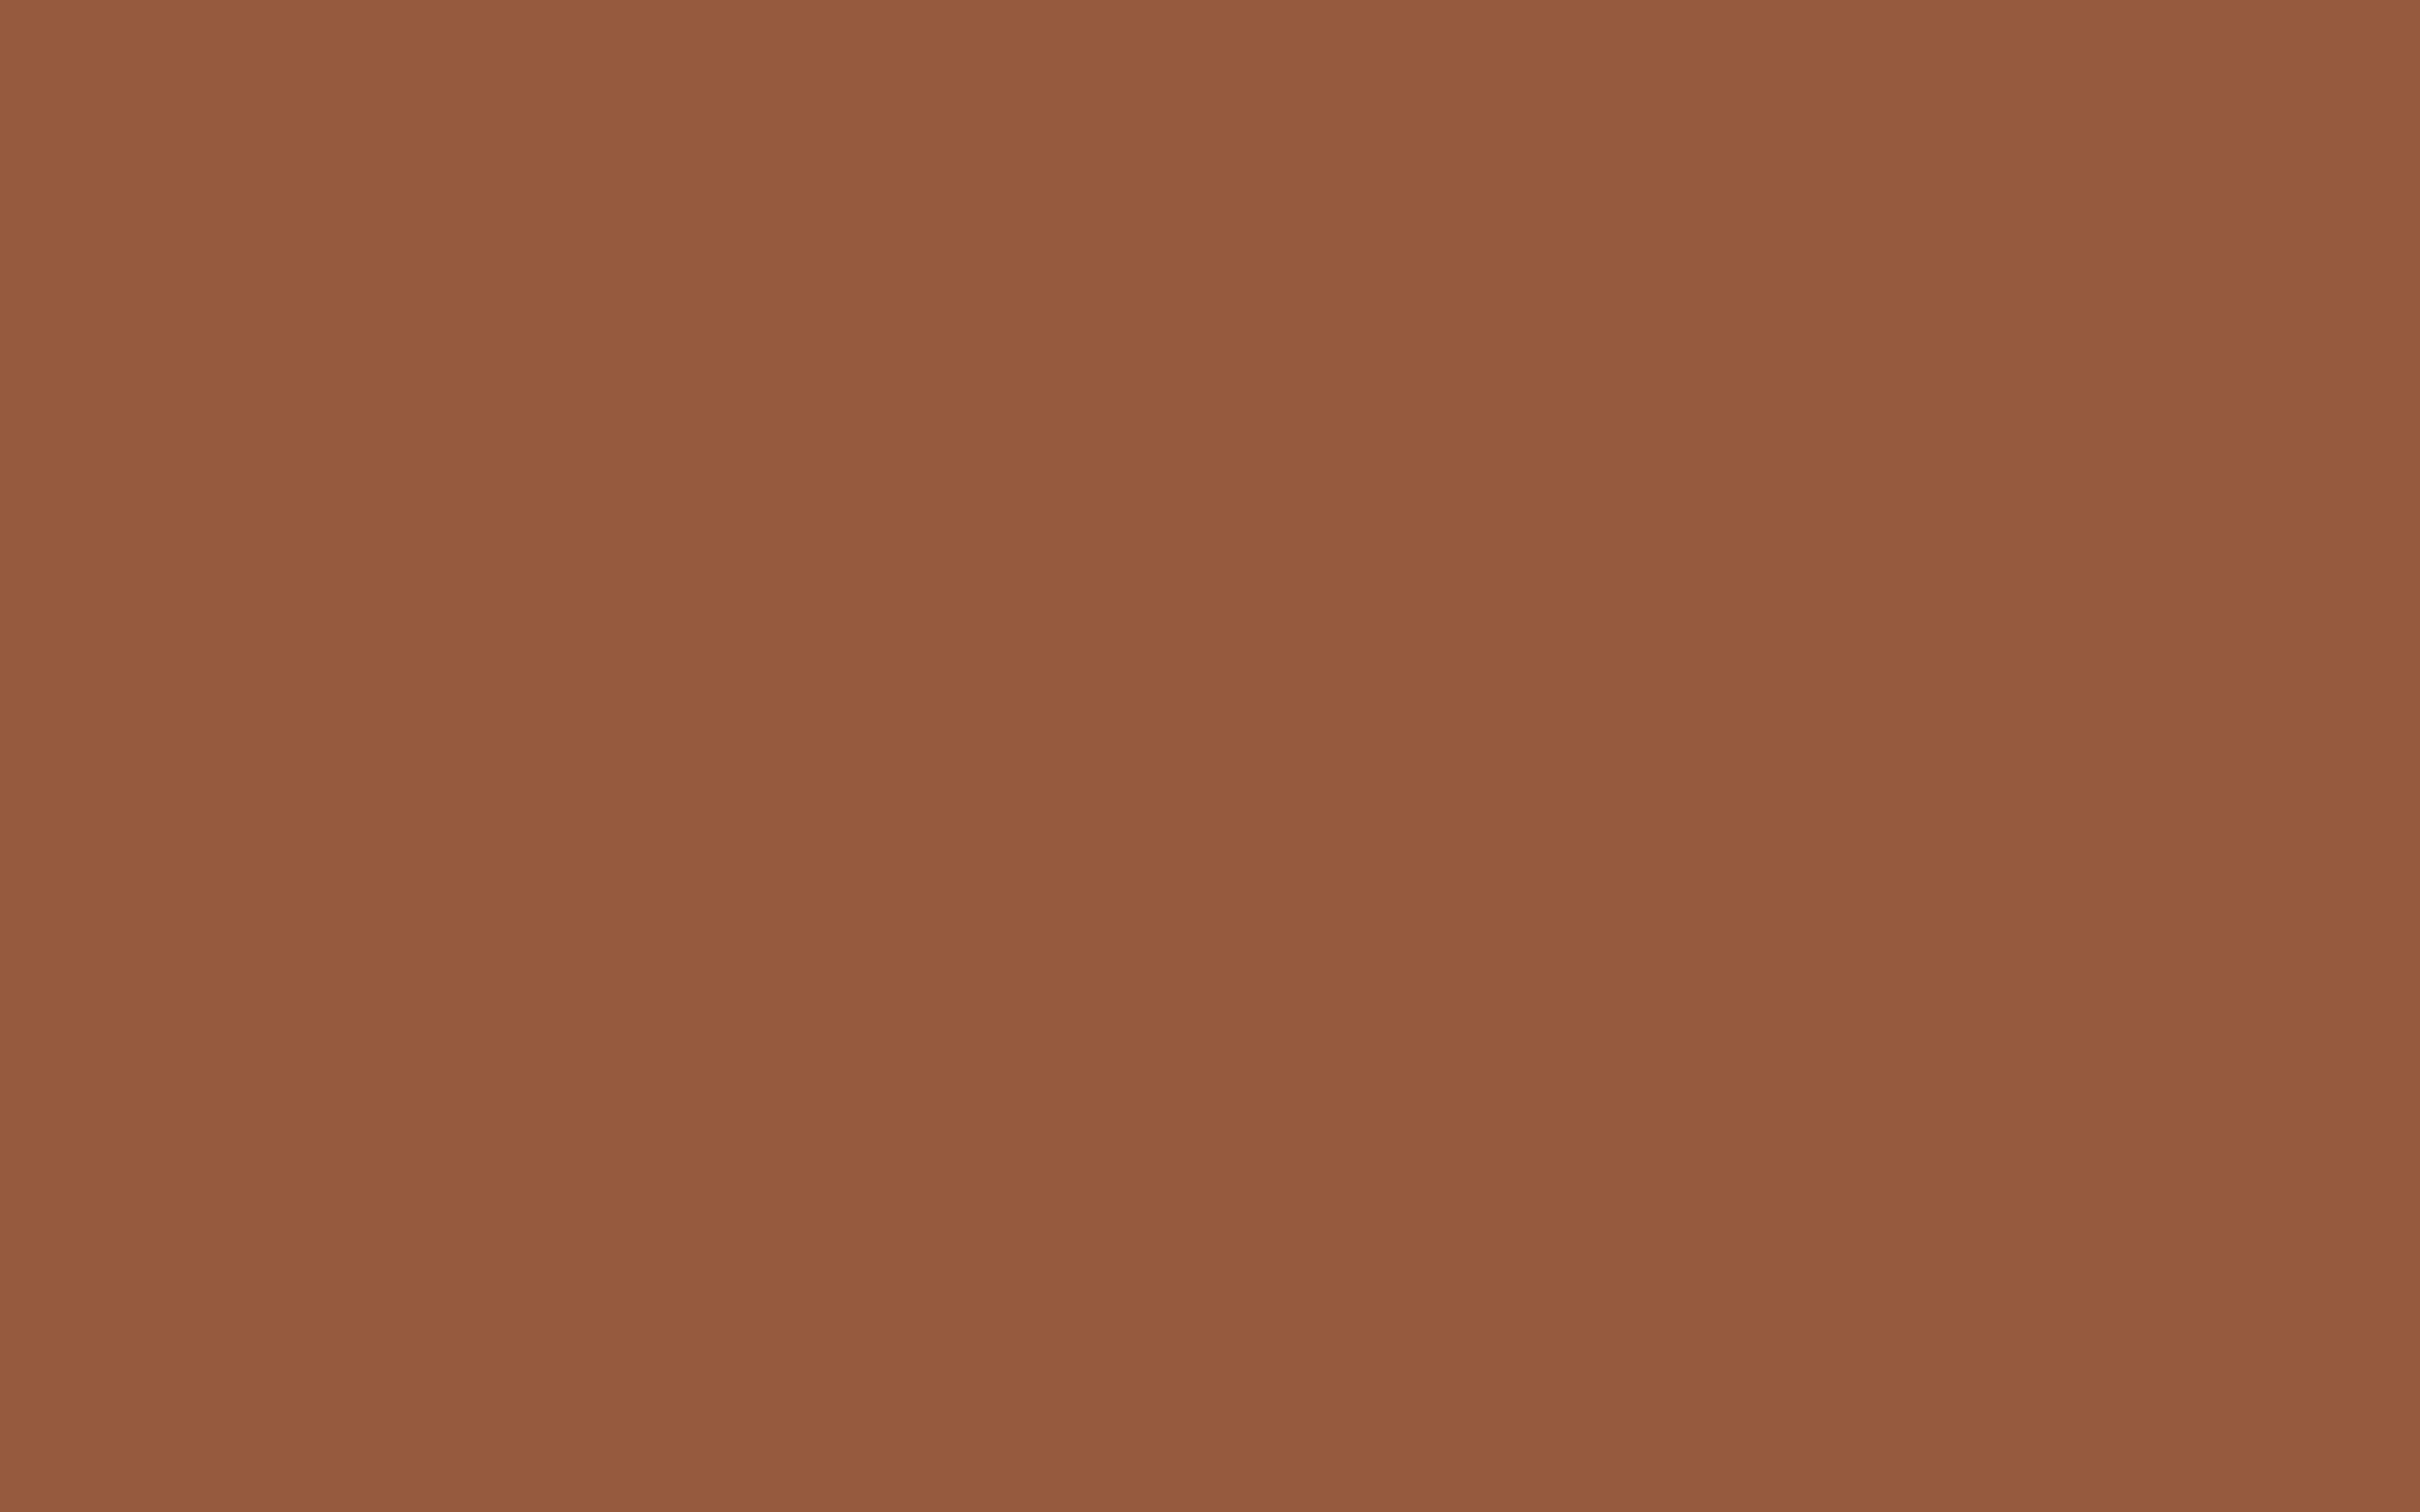 2560x1600 Coconut Solid Color Background